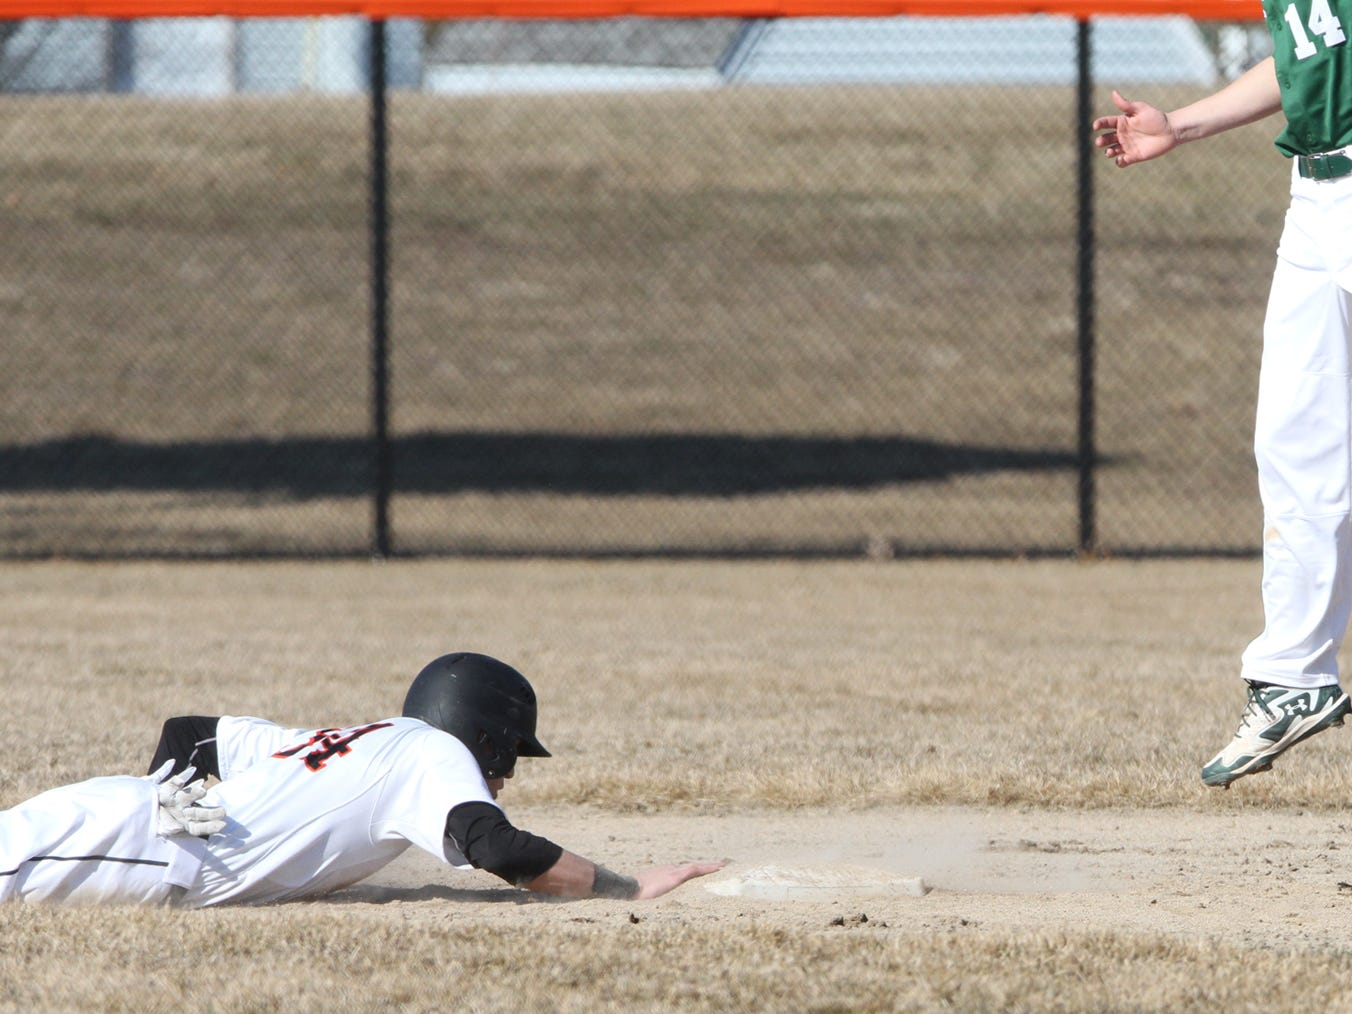 Brighton's Colin McClelland slides back to second base during the fourth inning in Wednesday's opener. He drove in the first run of the game for the Bulldogs in both games as Brighton earned a sweep.